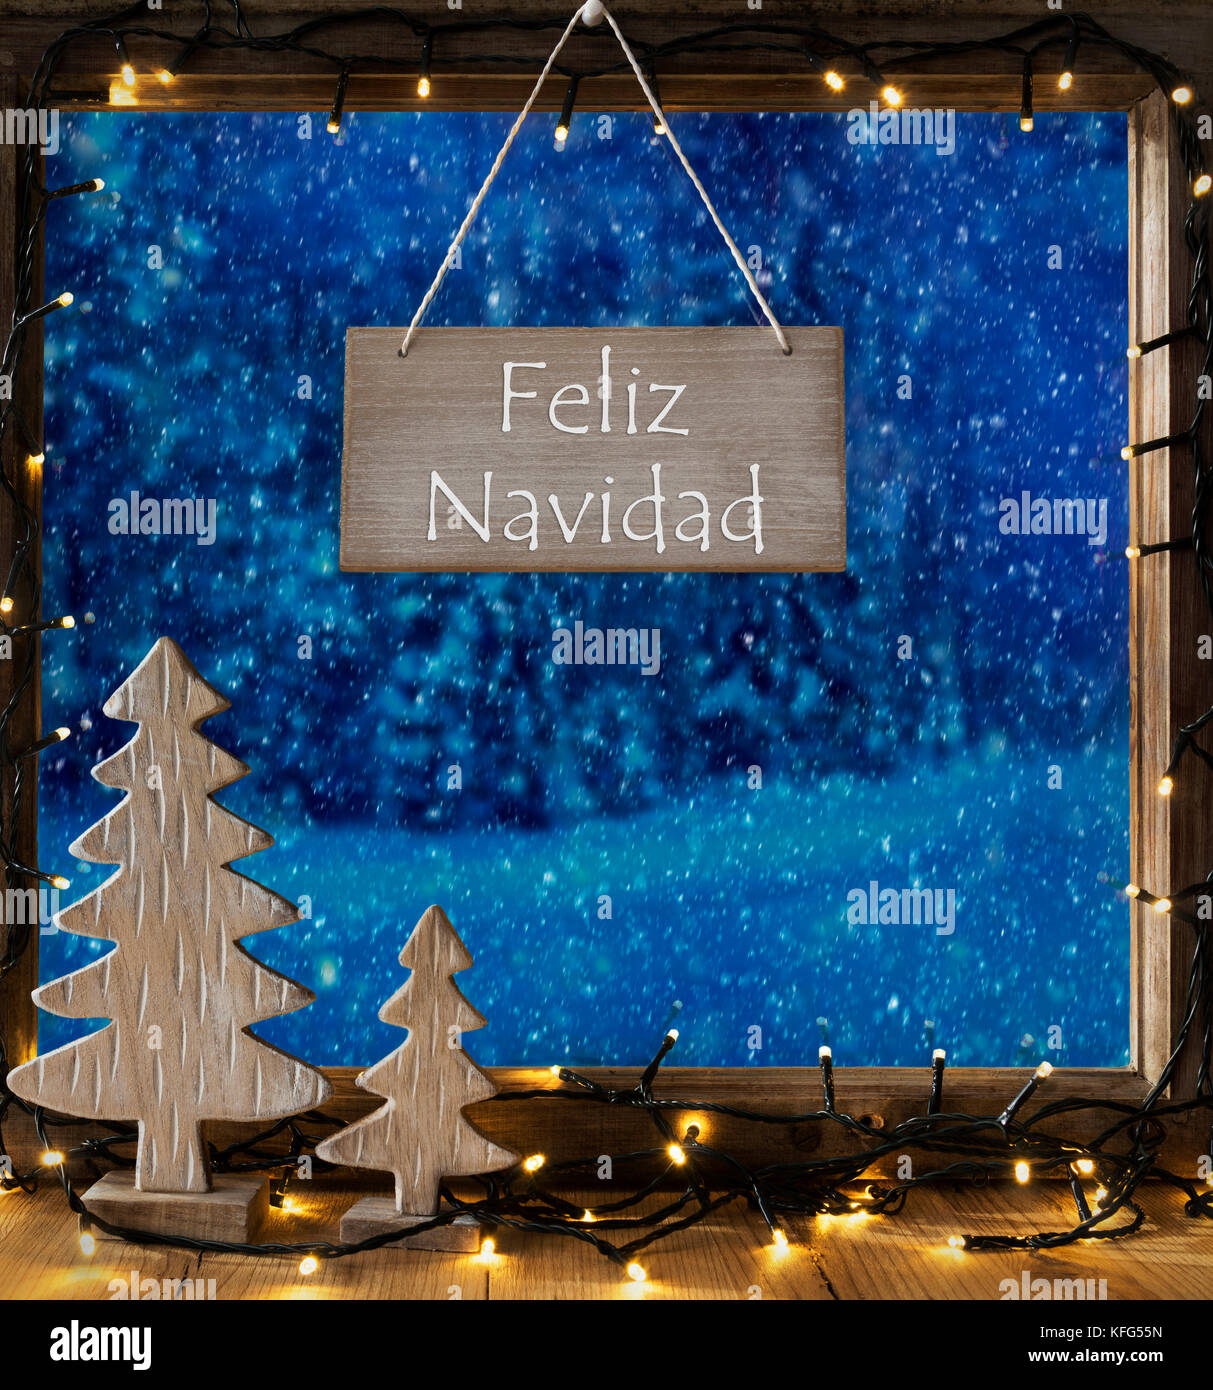 c53f5b58a3bf6 Sign With Spanish Text Feliz Navidad Means Merry Christmas. Window Frame  With Winter Landscape With